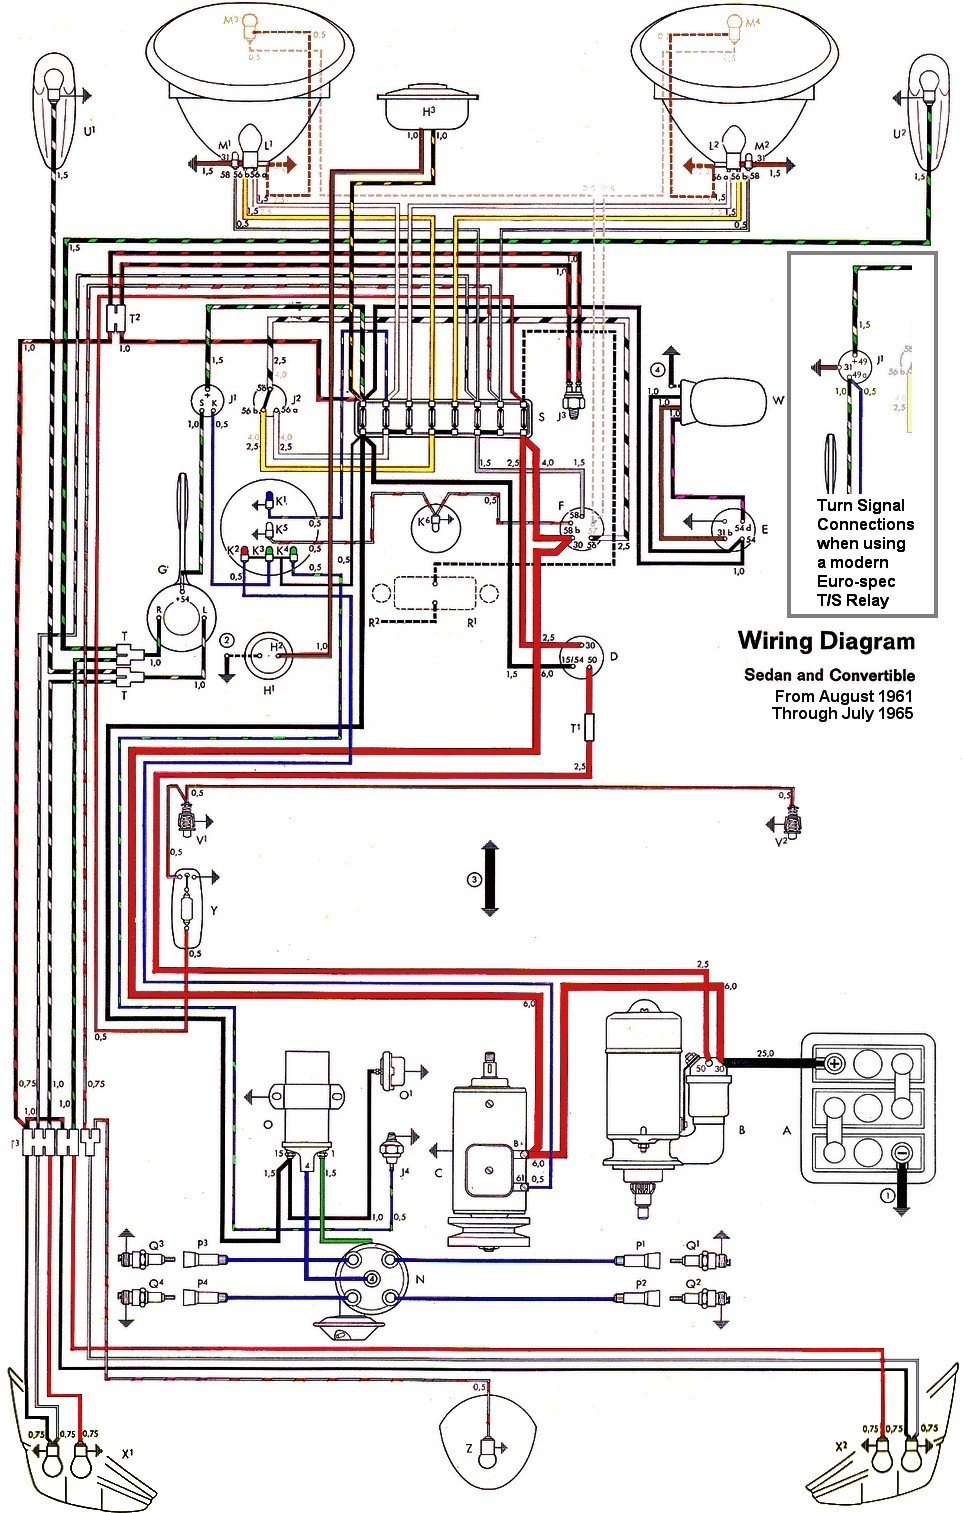 bug_62 65withinset wiring diagram vw beetle sedan and convertible 1961 1965 vw vw golf 3 electrical wiring diagram at webbmarketing.co